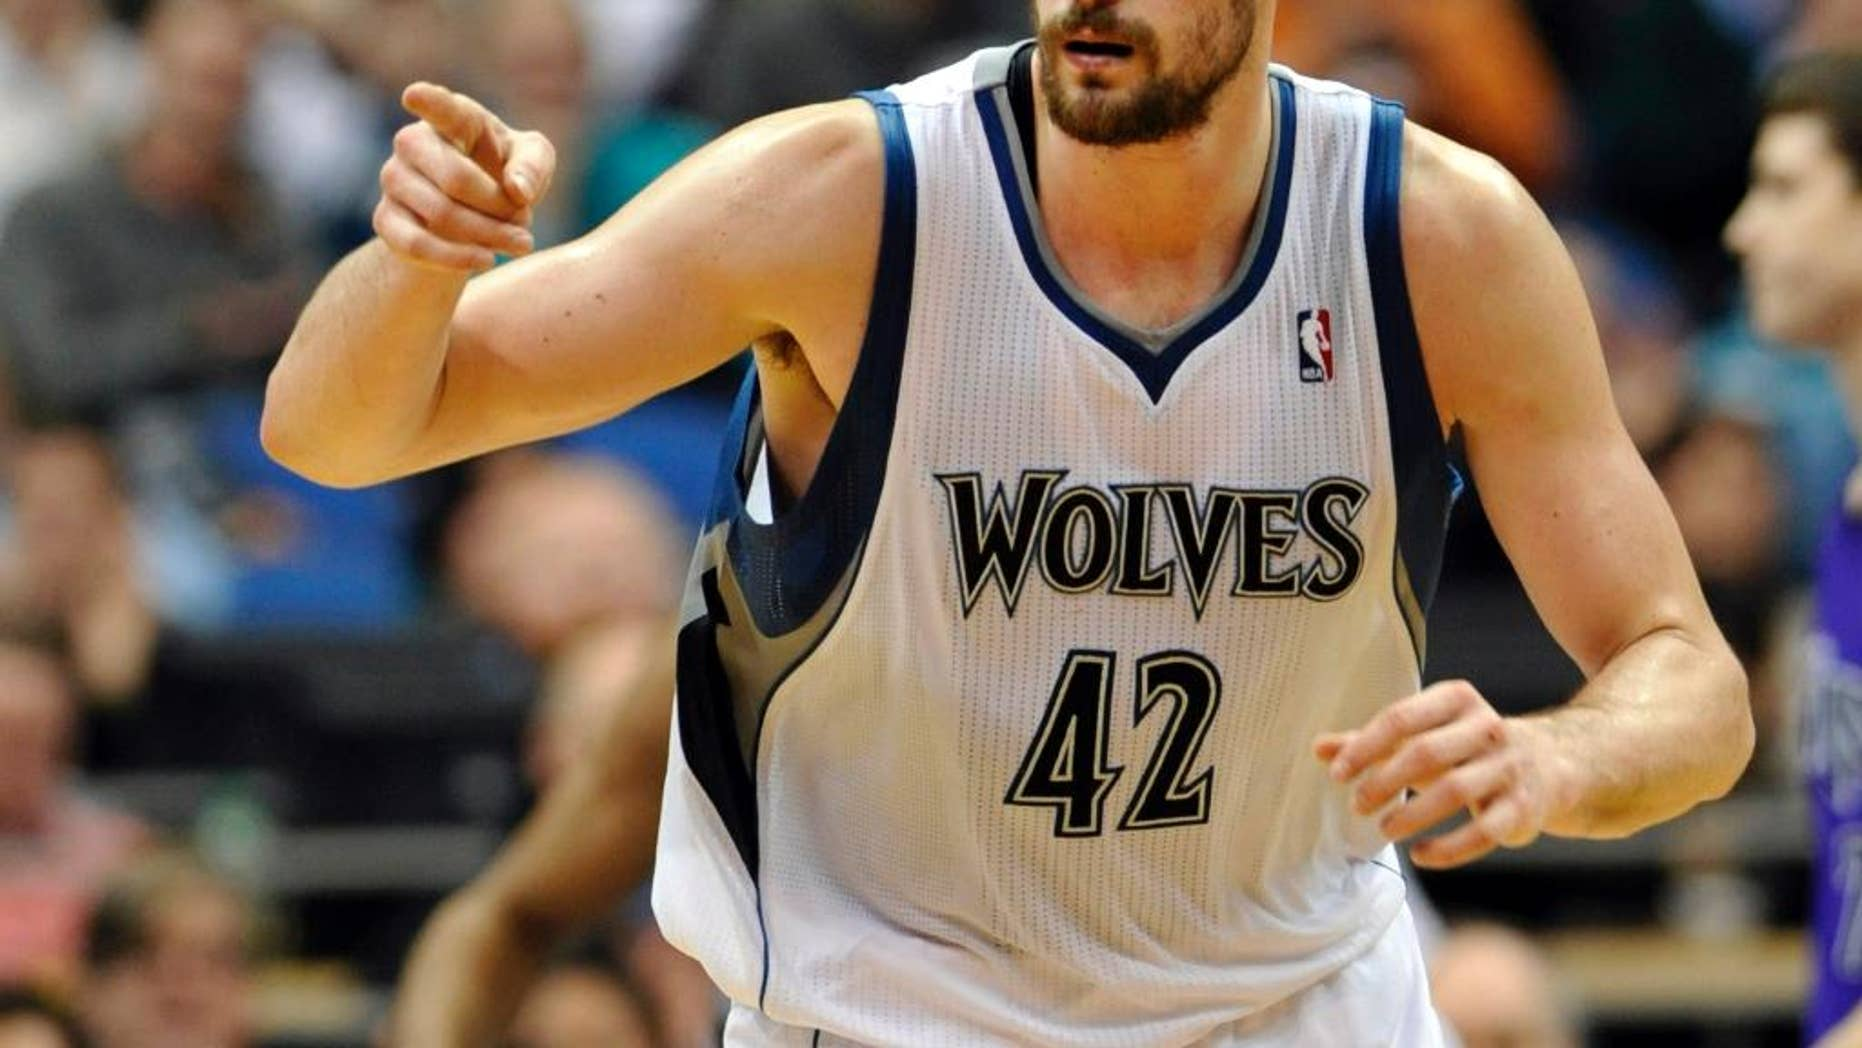 FILE - In this Jan. 16, 2012, file photo, Minnesota Timberwolves' Kevin Love reacts during the second half of an NBA basketball game against the Sacramento Kings in Minneapolis. The Timberwolves, Cleveland Cavaliers and Philadelphia 76ers completed a blockbuster trade sending Love to team up with LeBron James in Cleveland for 2014 No. 1 draft pick Andrew Wiggins on Saturday, Aug. 23, 2014, a person familiar with the trade said. The Timberwolves are getting Wiggins and former top pick Anthony Bennett from Cleveland and veteran forward Thaddeus Young from Philadelphia. The 76ers get a 2015 first-round draft choice from Cleveland, and guard Alexey Shved and forward Luc Mbah a Moute from Minnesota. (AP Photo/ Jim Mone, File)